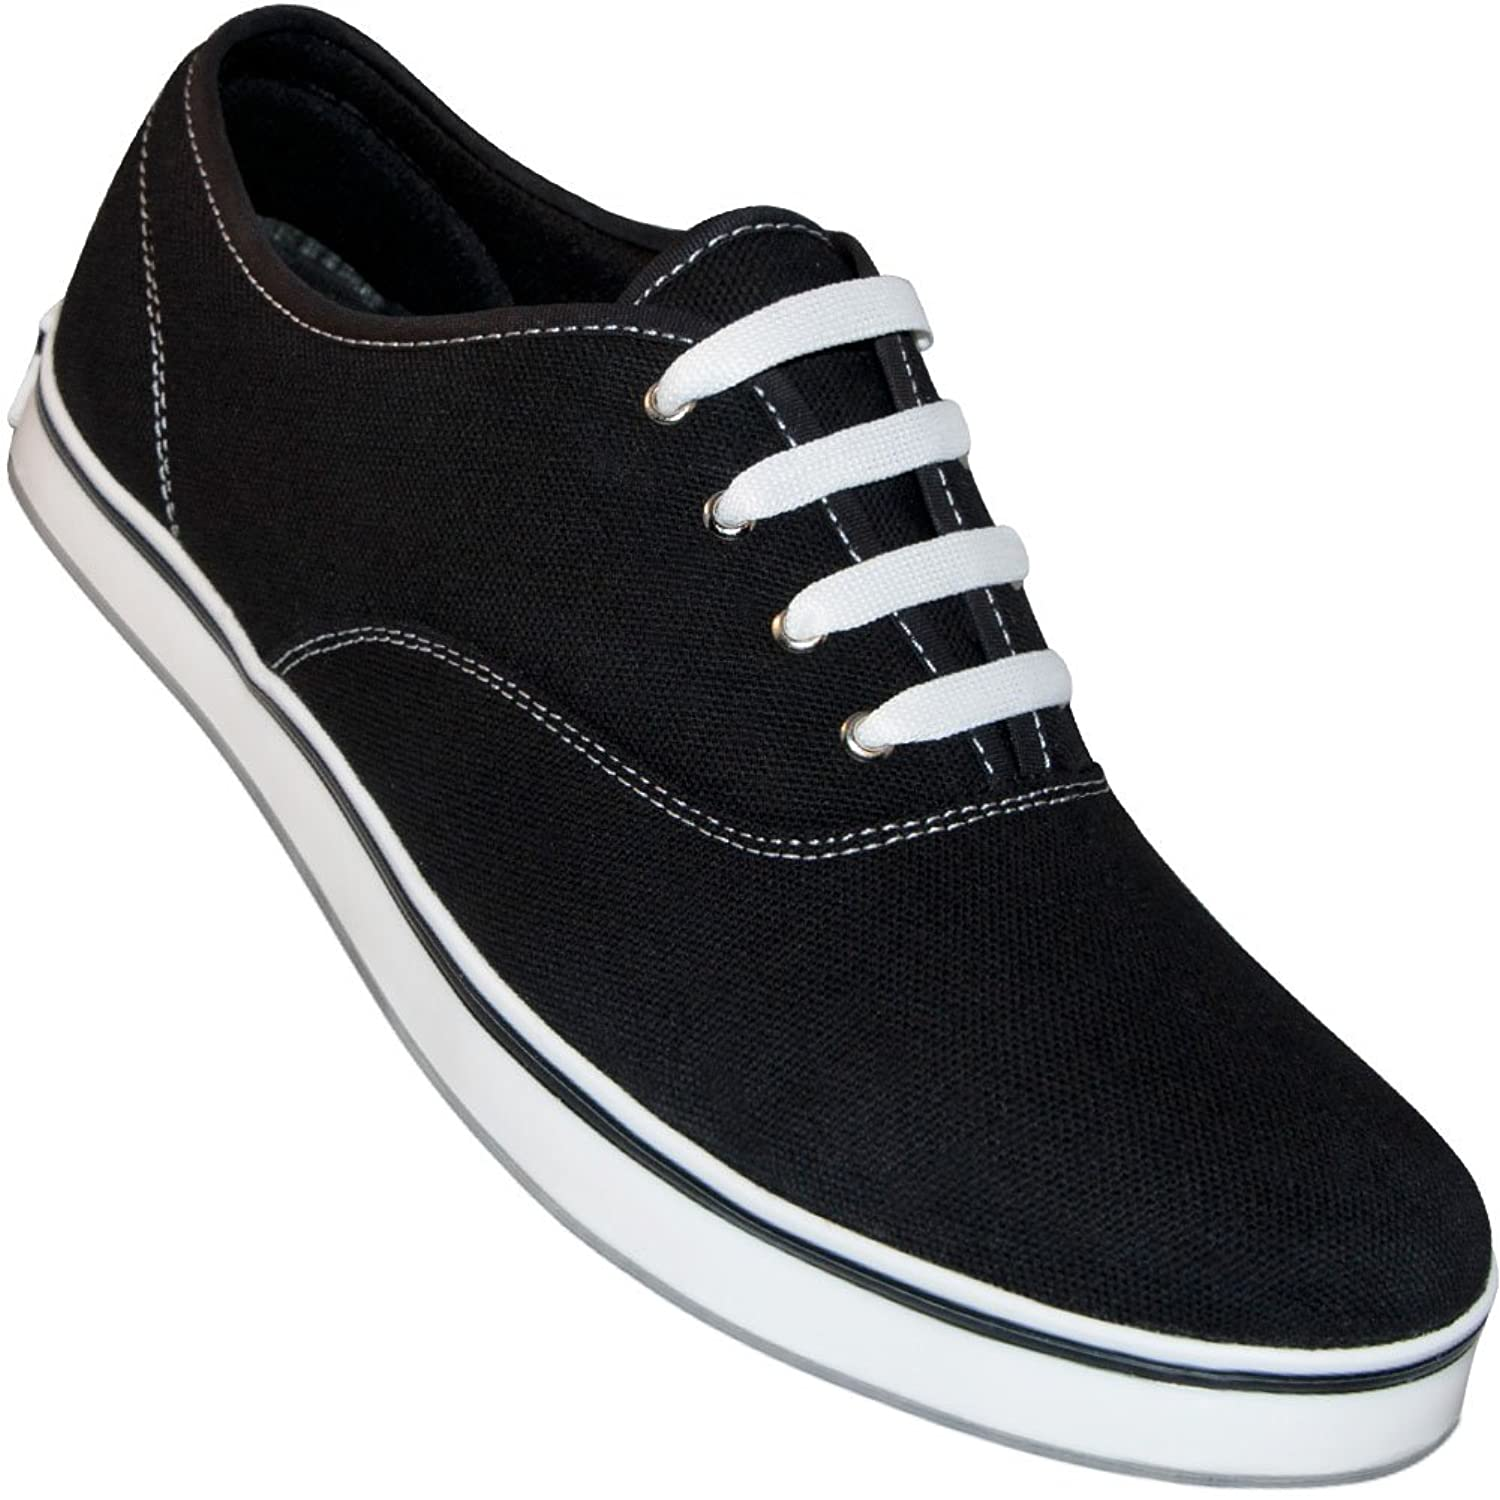 1960s Style Shoes Aris Allen Mens Black Classic Dress Dance Sneaker $48.95 AT vintagedancer.com